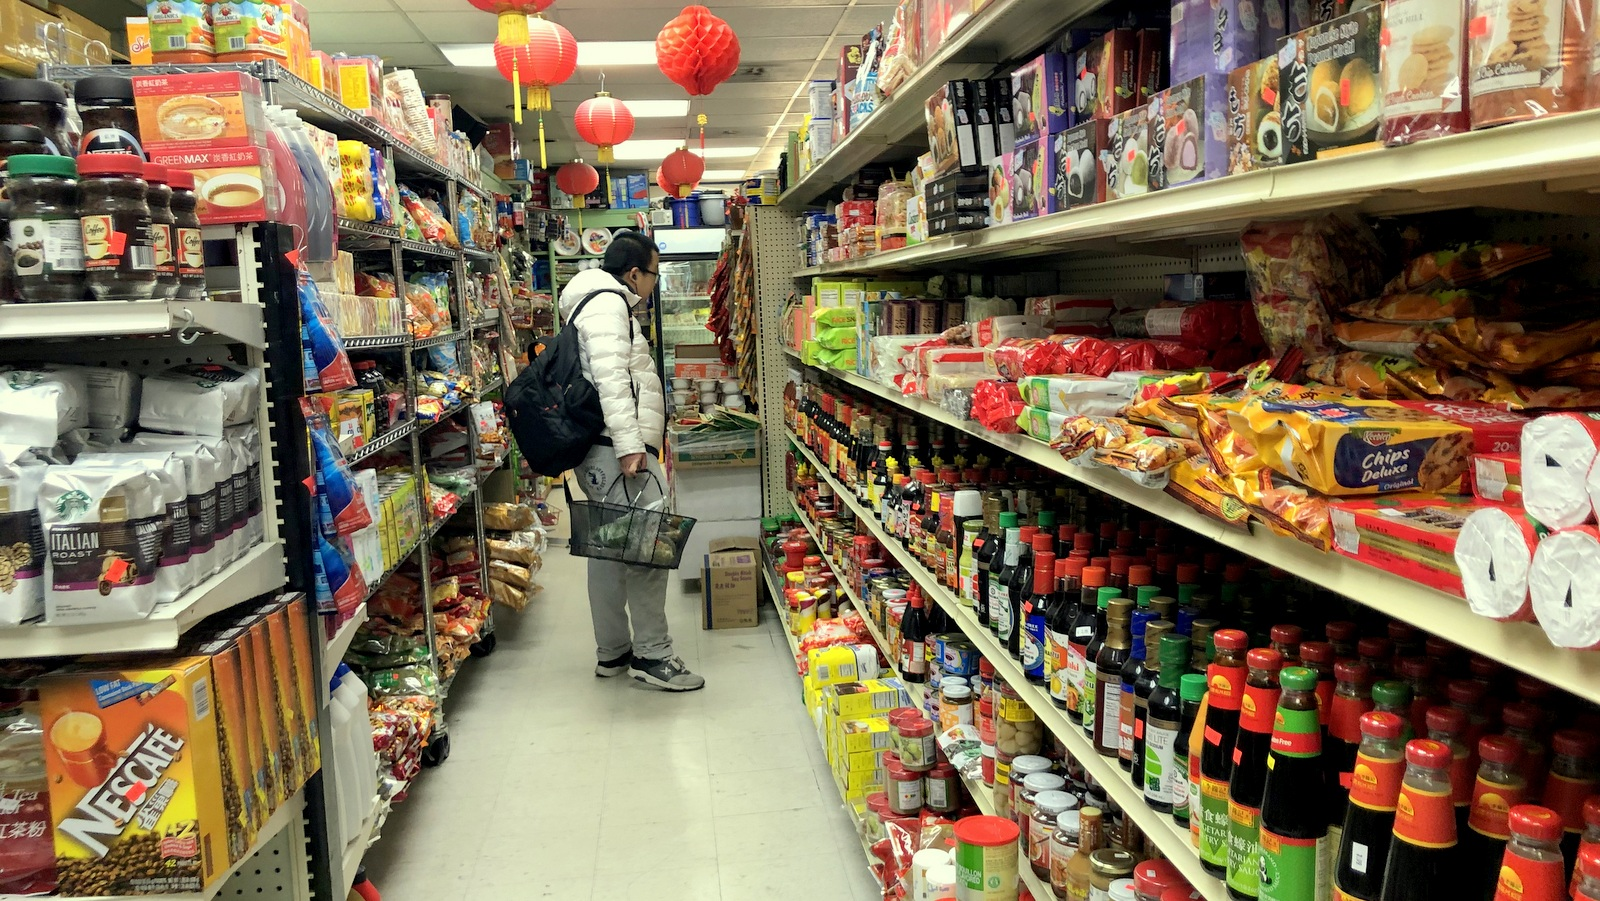 Asian and Middle Eastern people, students and Ethiopians from the neighborhood are among the customers at Po Tung Oriental Grocery, Baltimore Chinatown's only market. (Fern Shen)